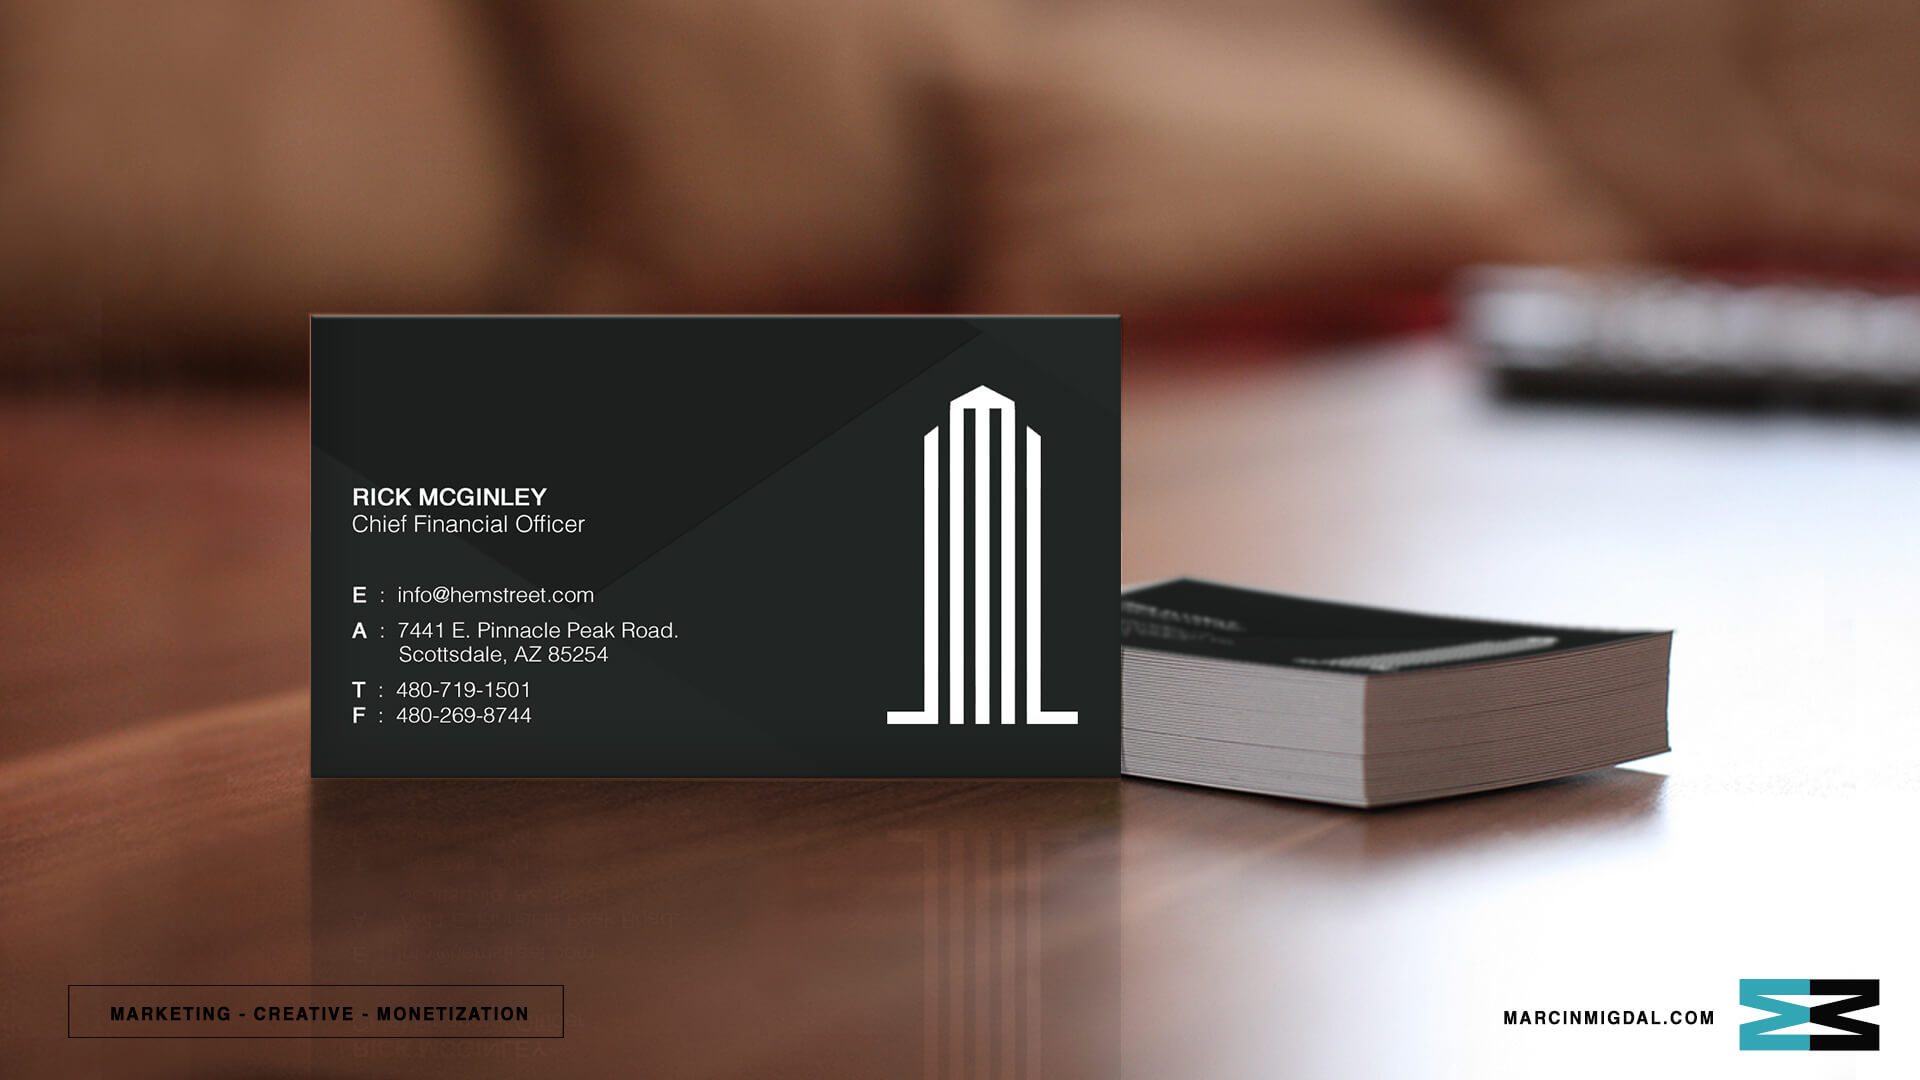 creative-director-marketing-director-marcin-migdal-custom-business-card-design-29a